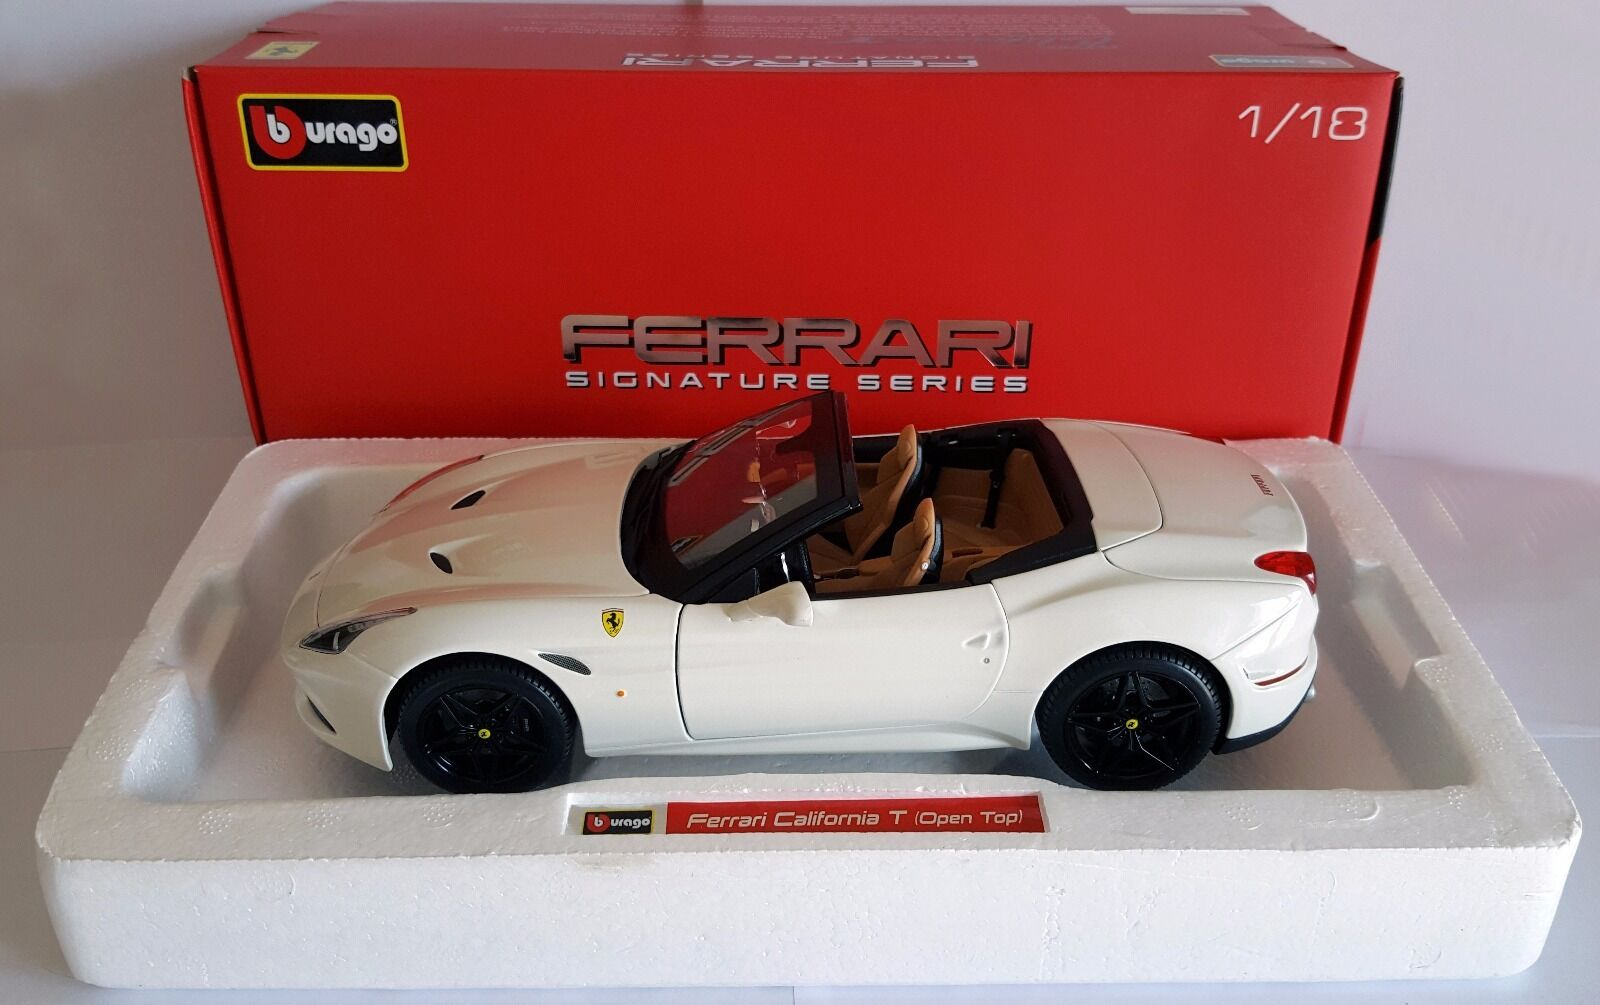 Bburago Ferrari California T 1 18 Signature no AUTOart MR BBR Kyosho Minichamps